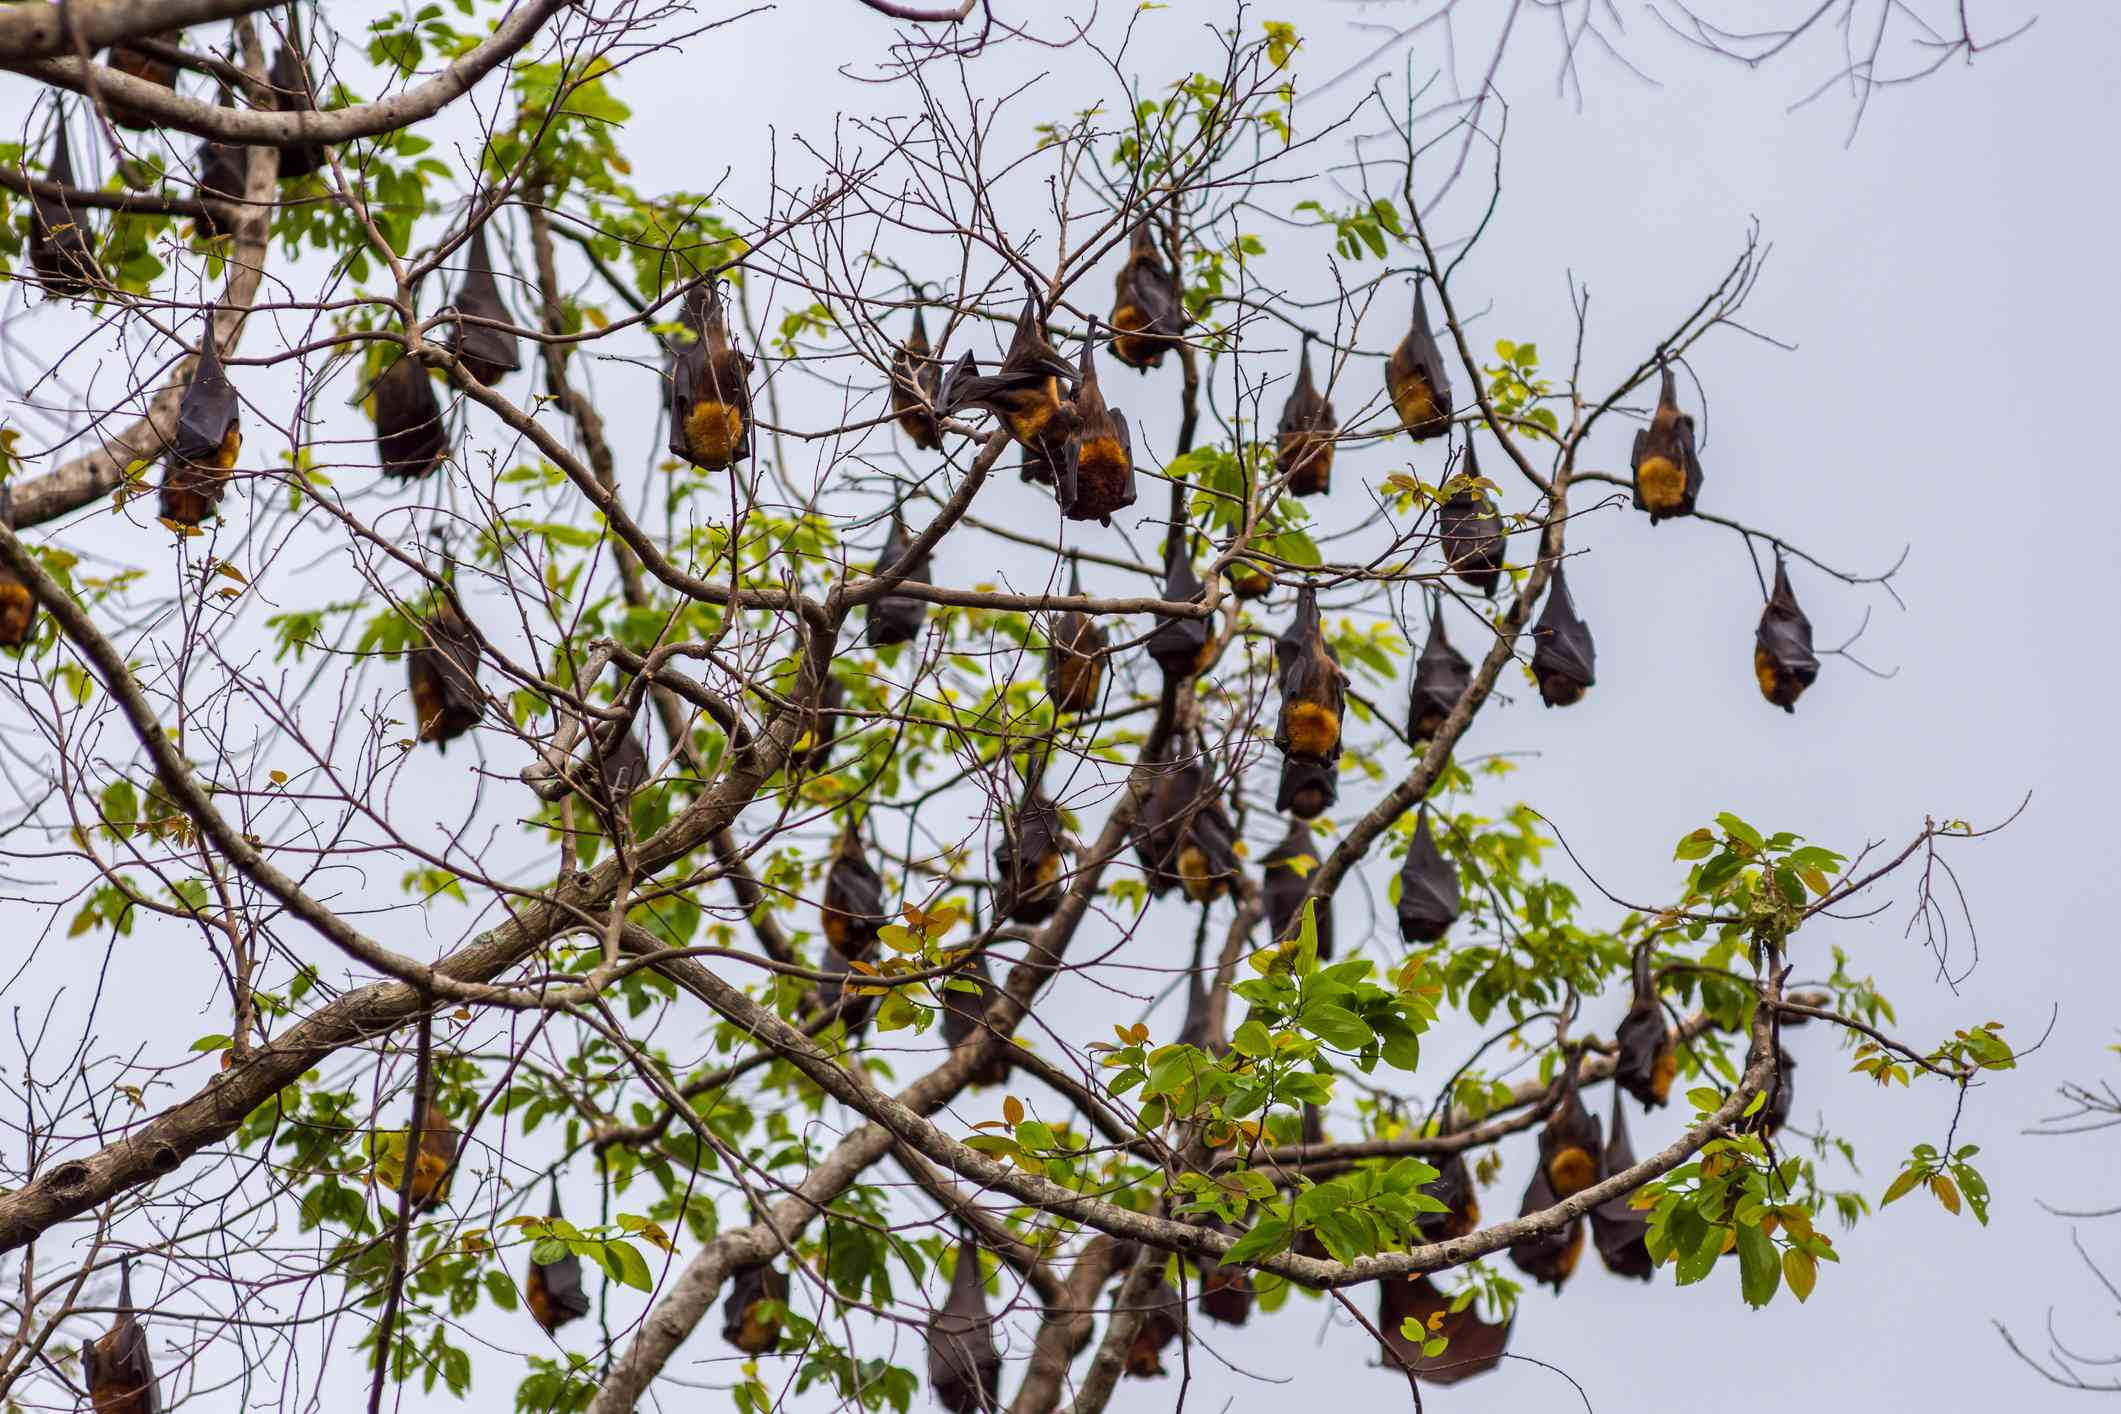 A tree full of roosting flying foxes hanging upside down on the brances.